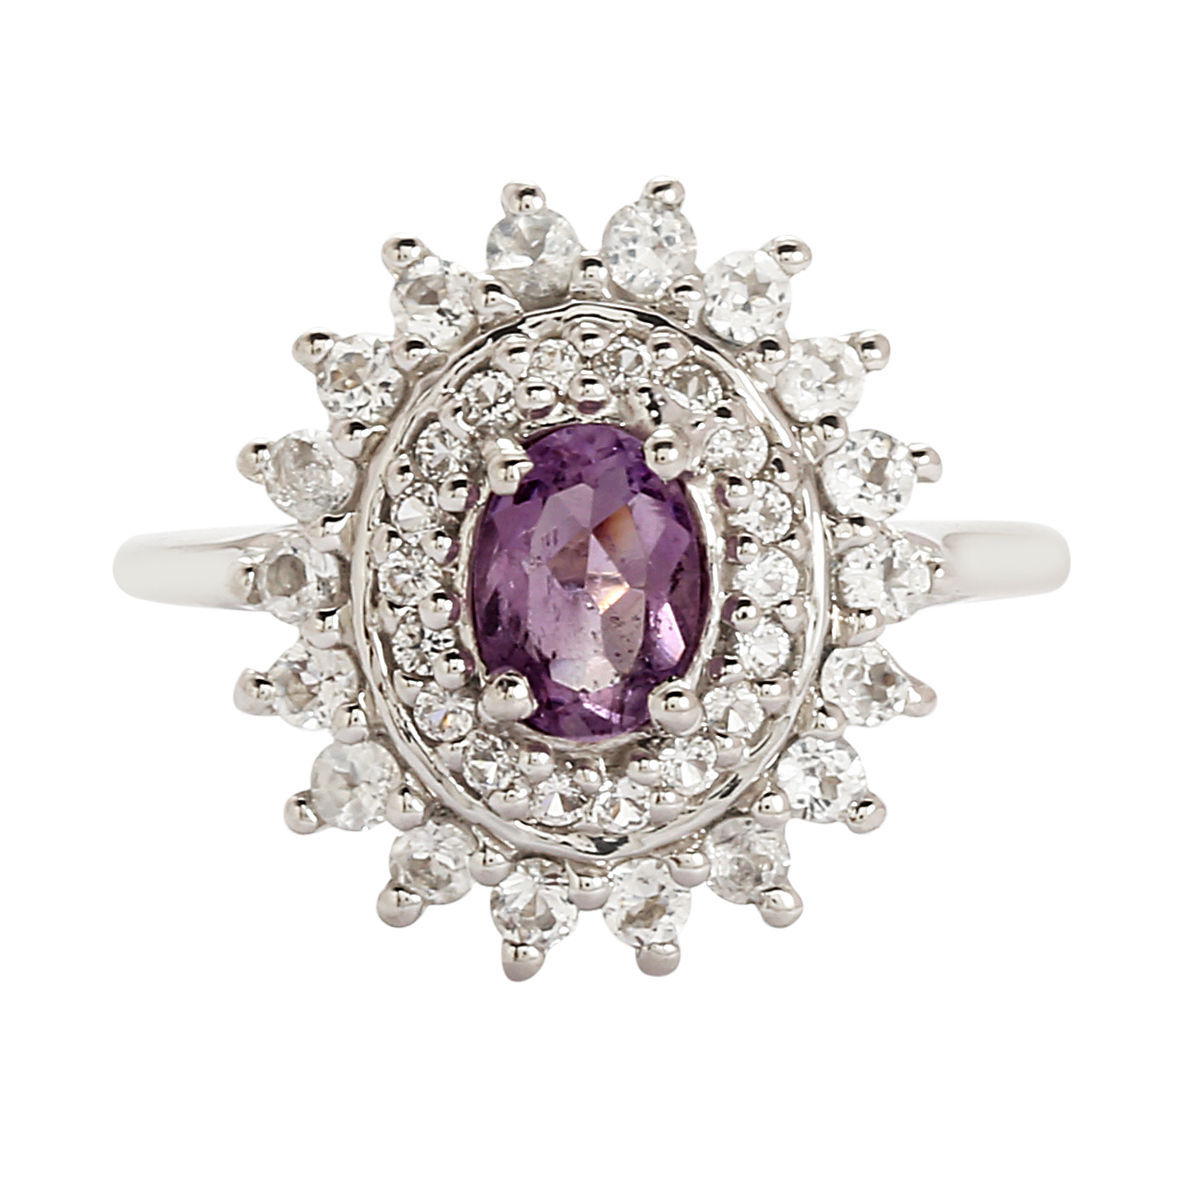 Solid 925 Sterling Silver With 7X5 MM Oval Amethyst And White Topaz Ring US 8